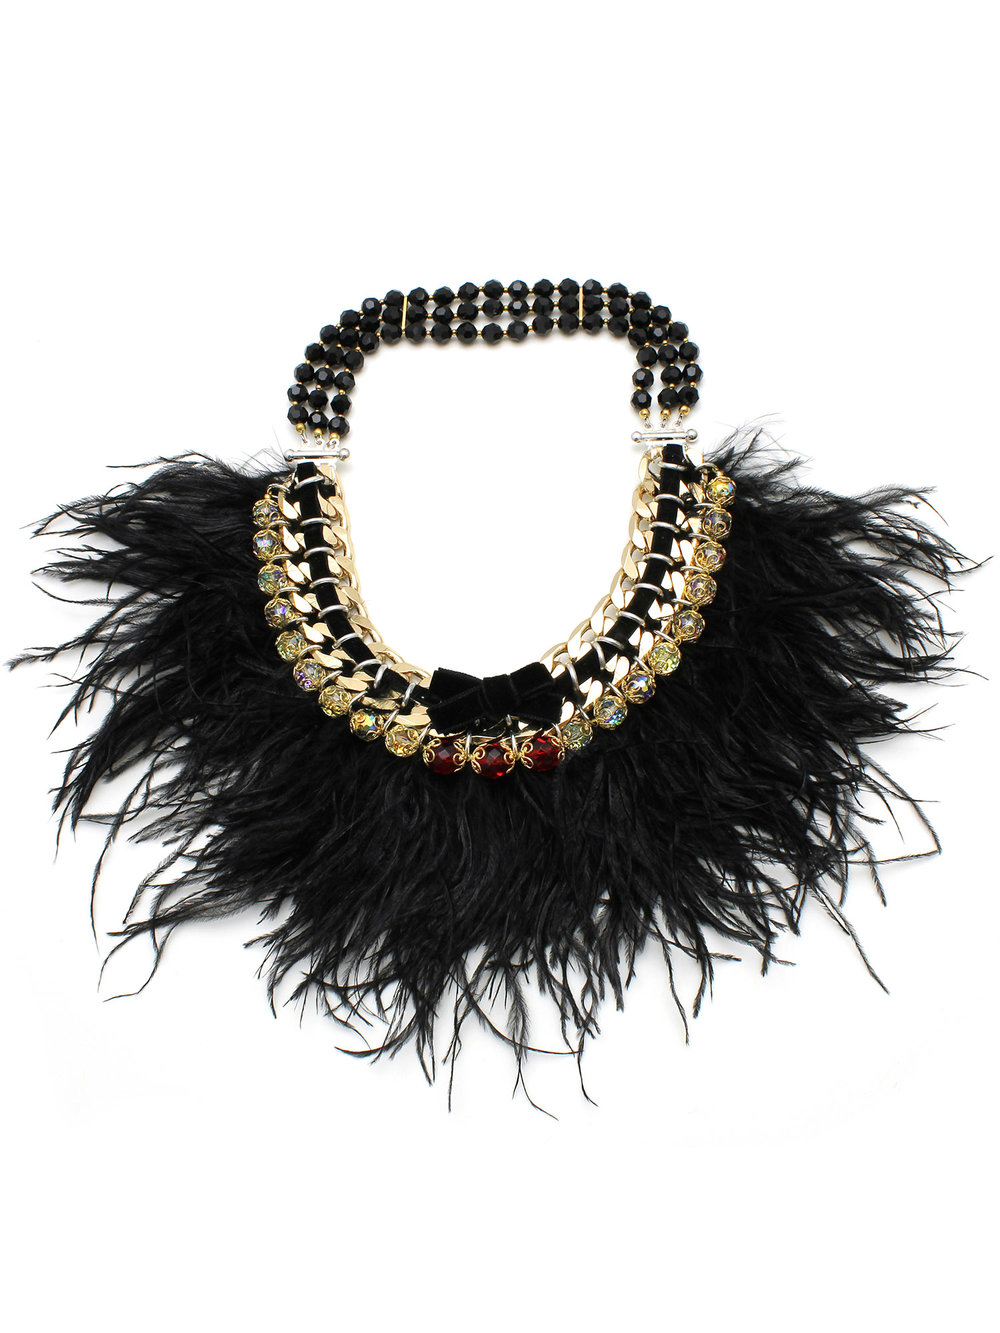 065 - Black Ostrich Feather Necklace.jpg